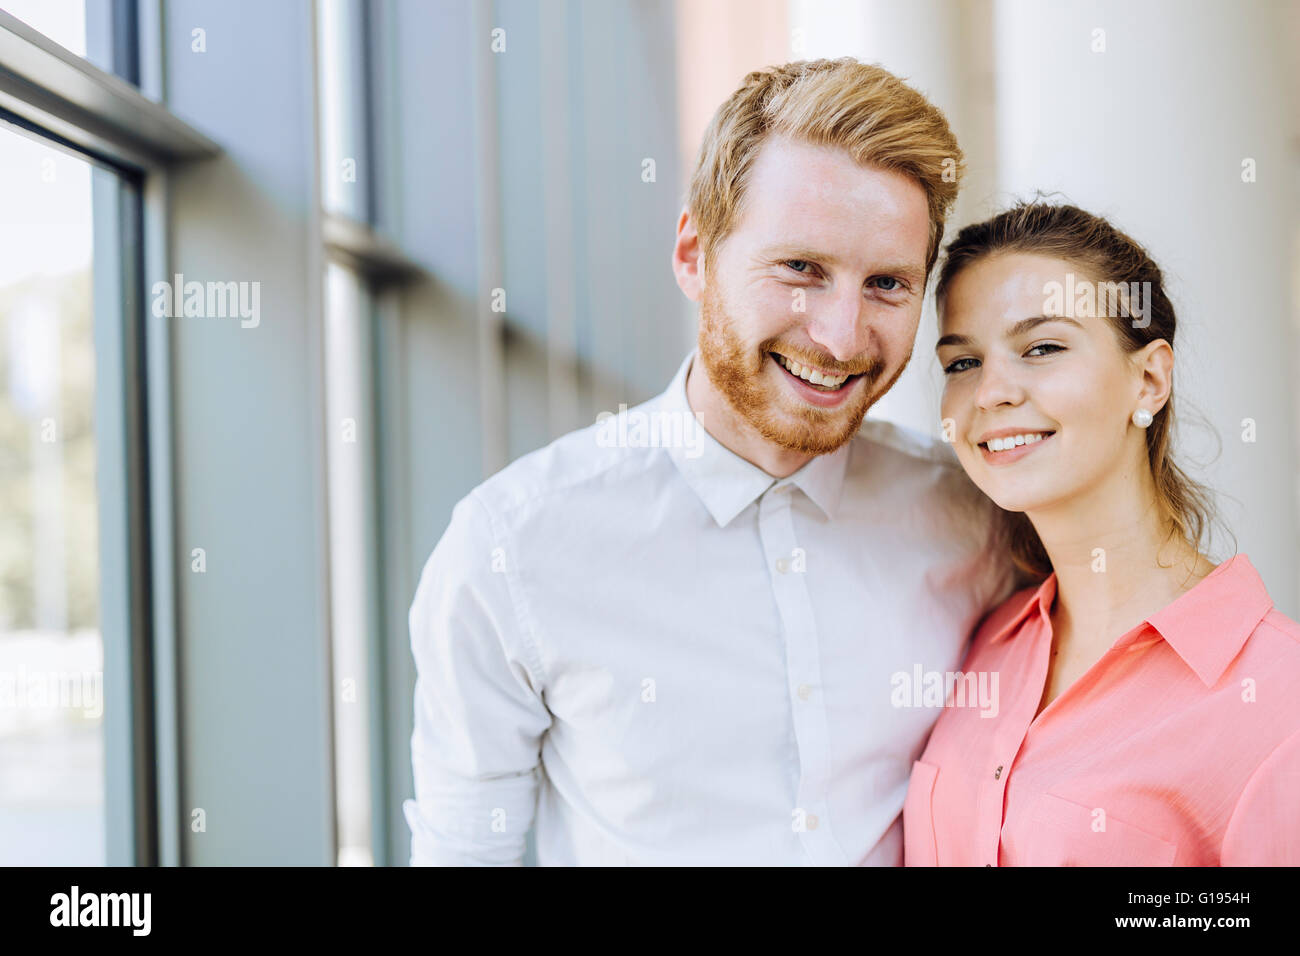 Beautiful colleagues in business smiling and being close to each other. Sincere emotions - Stock Image